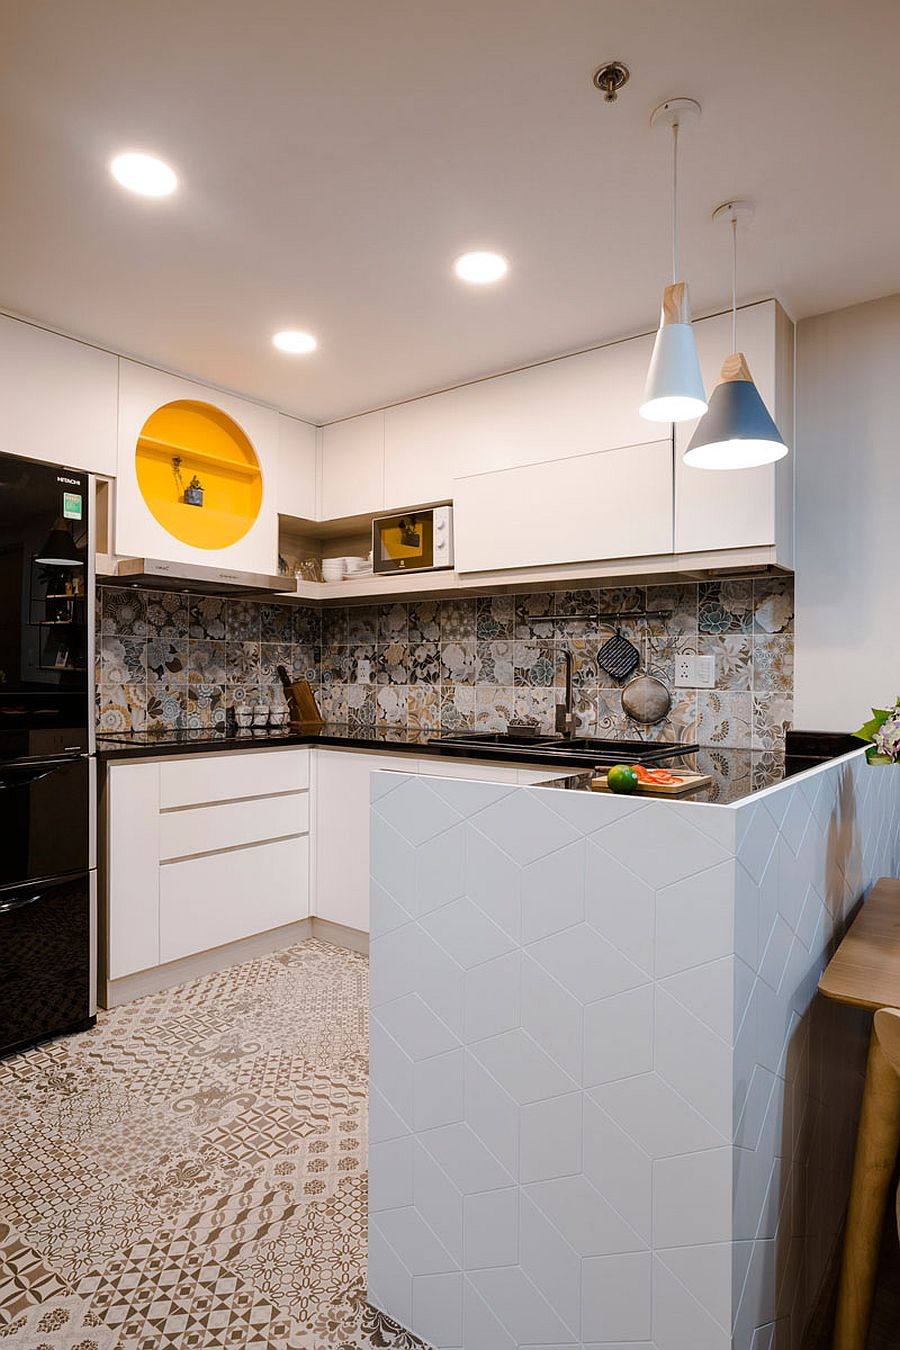 Space-savvy and stylish kitchen with white cabinets and tiled backsplash